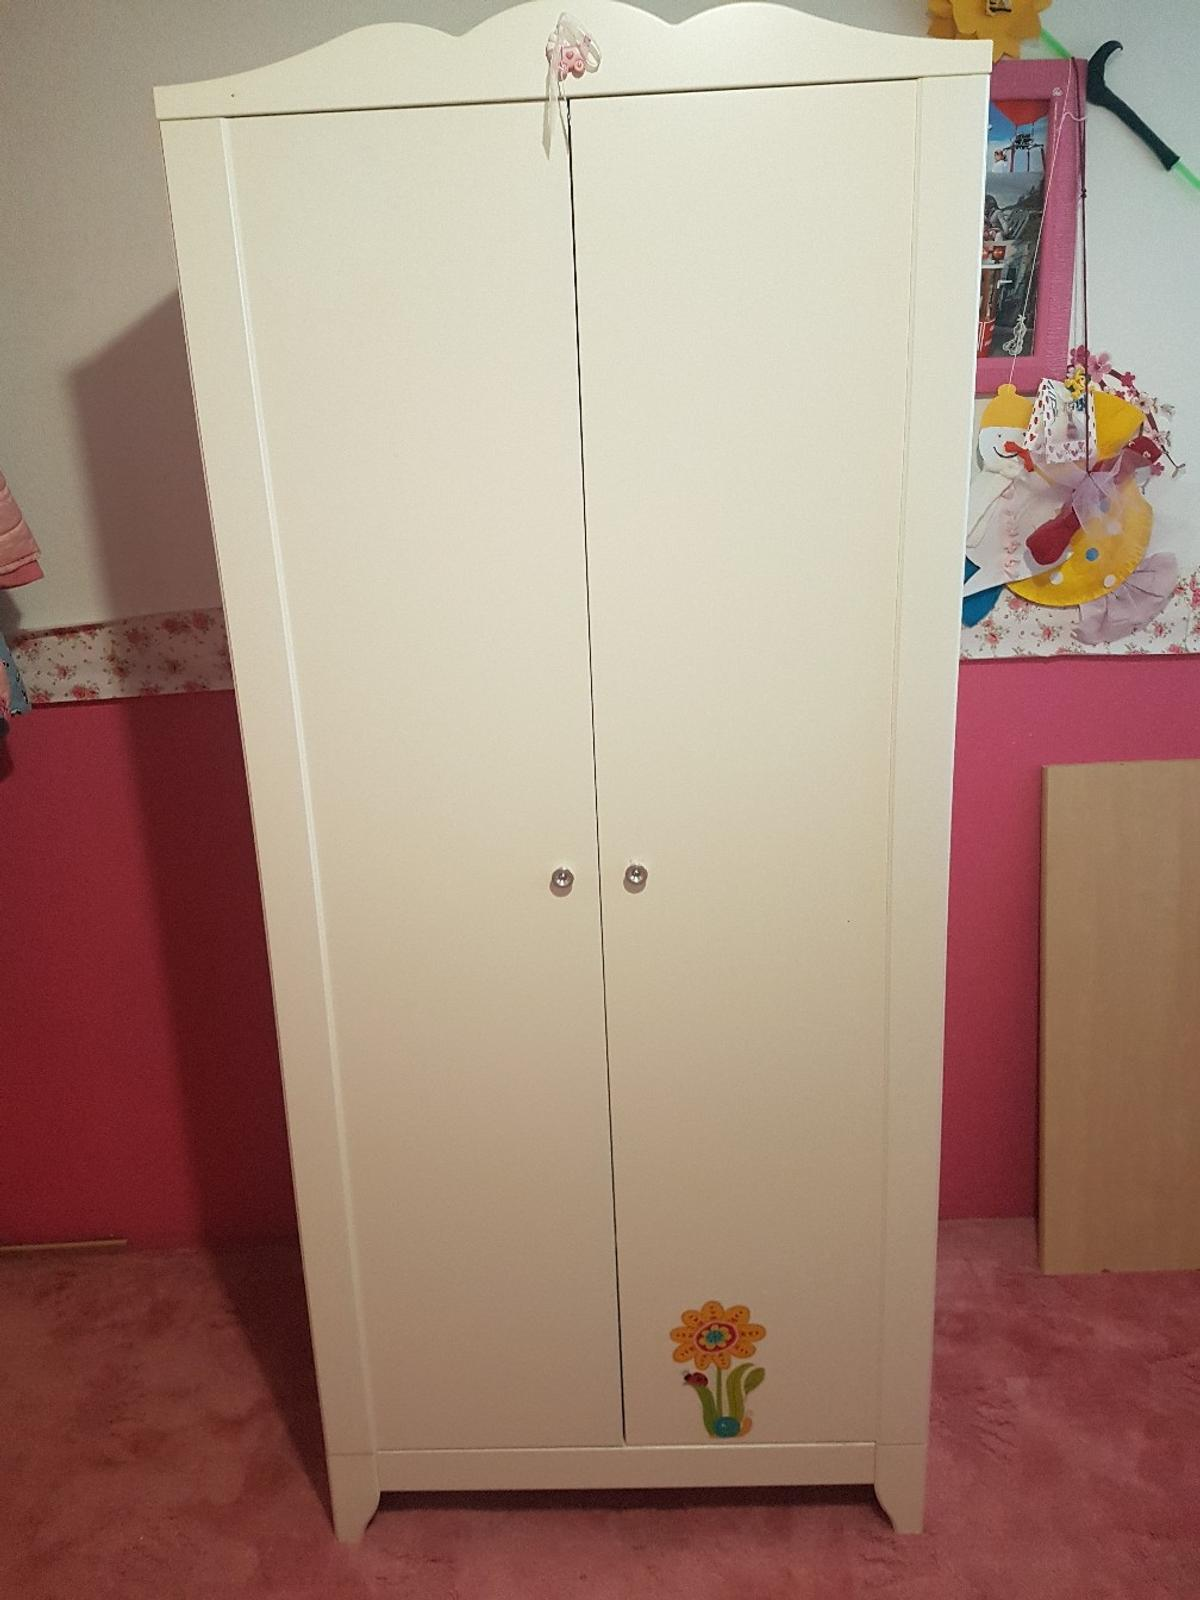 Kinderschrank In 6210 Wiesing For 40 00 For Sale Shpock